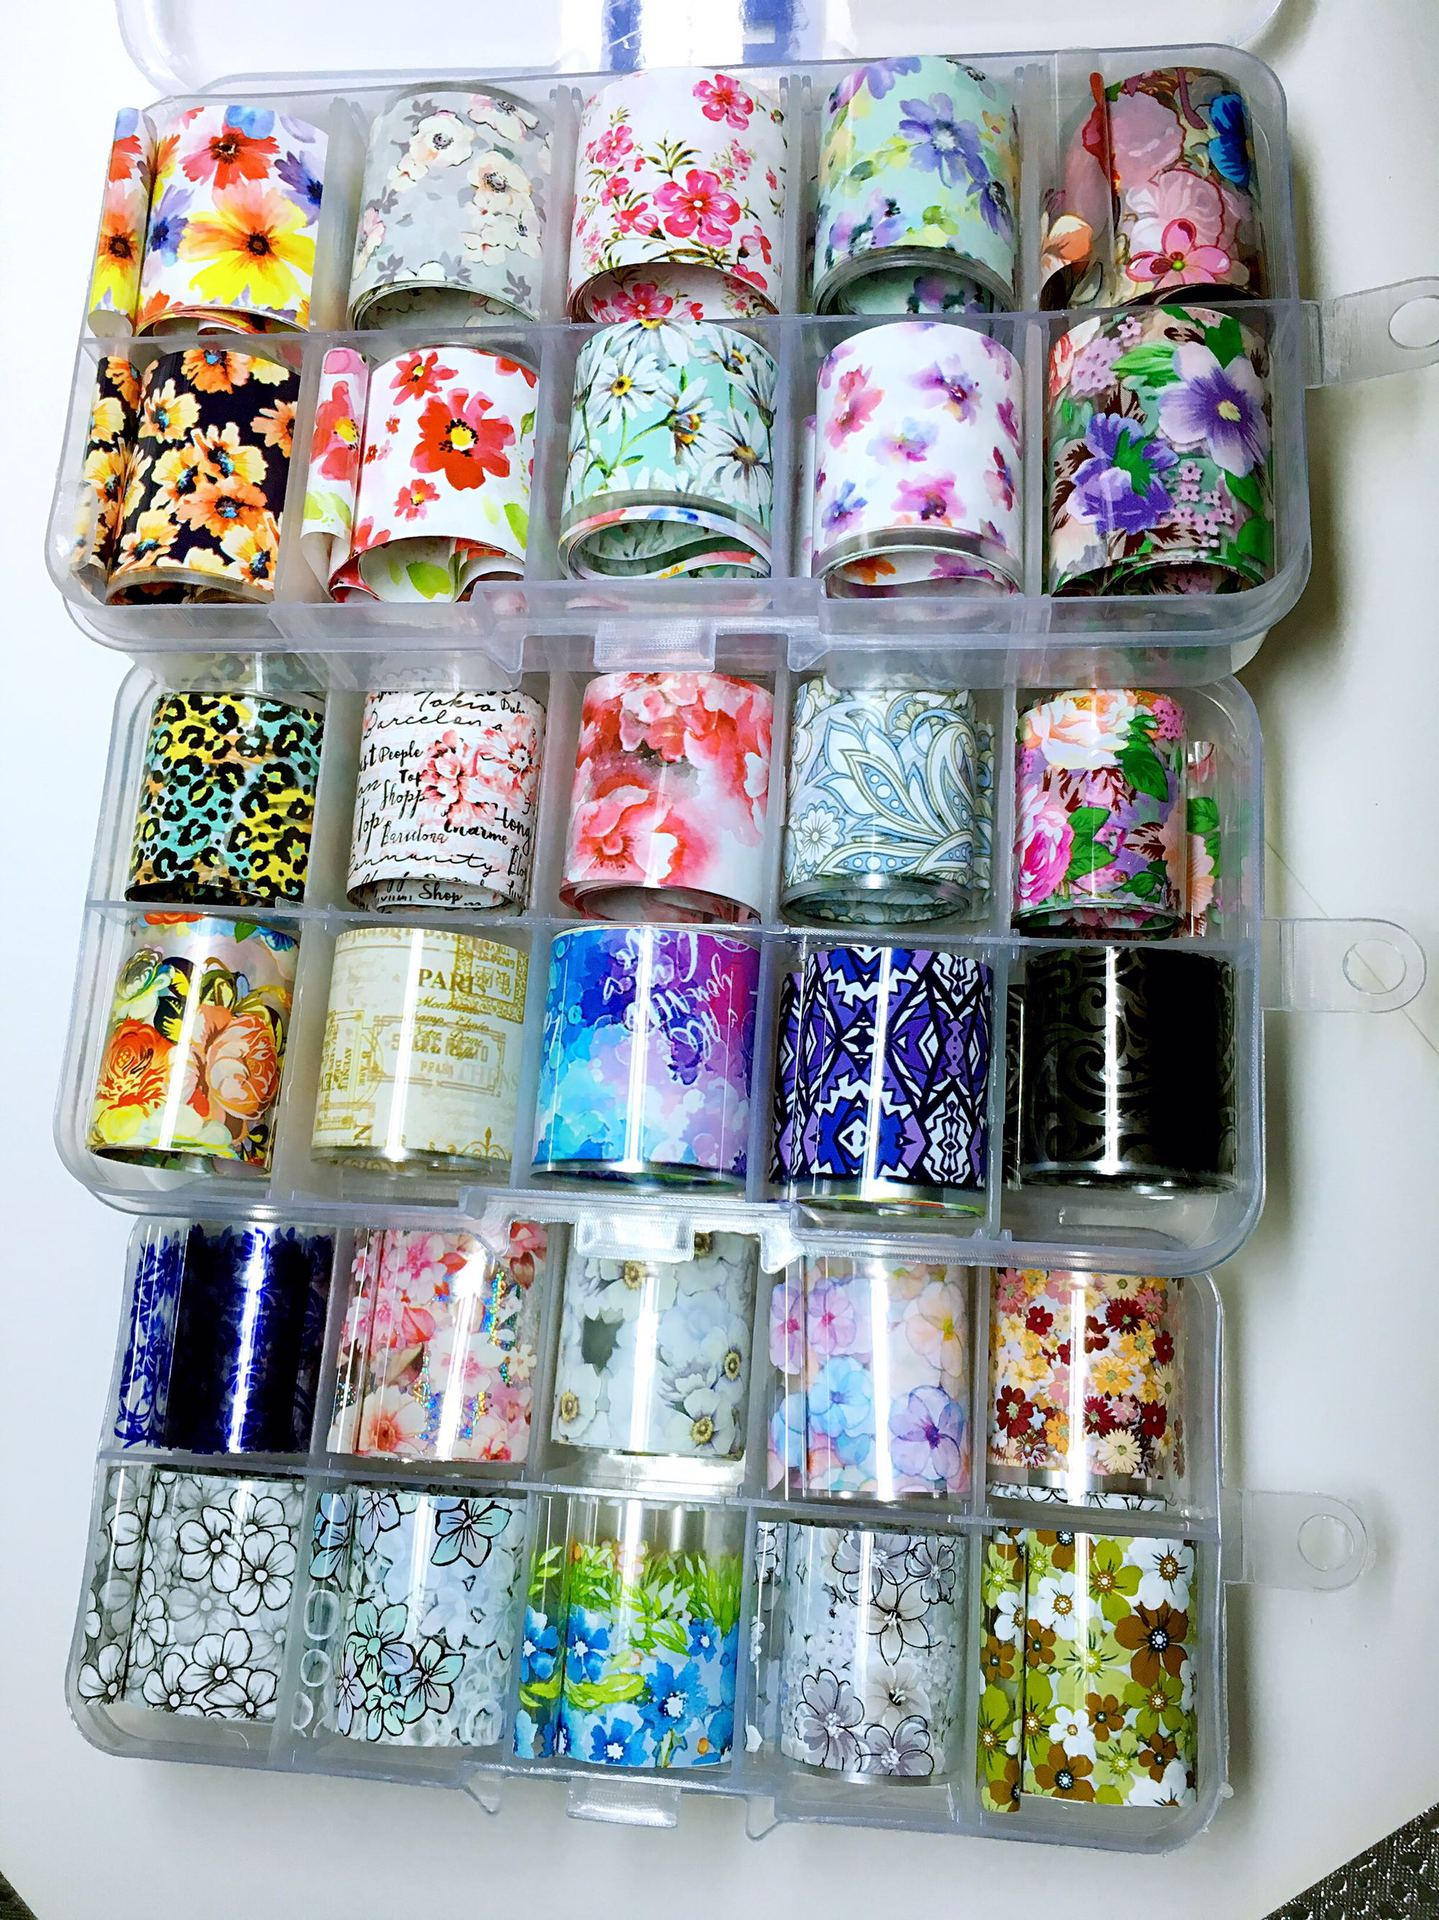 2.5X100cm Holographic Nail Art Transfer Foil Sticker Starry AB Paper Wraps Adhesive Decals Nails Decoration Accessories